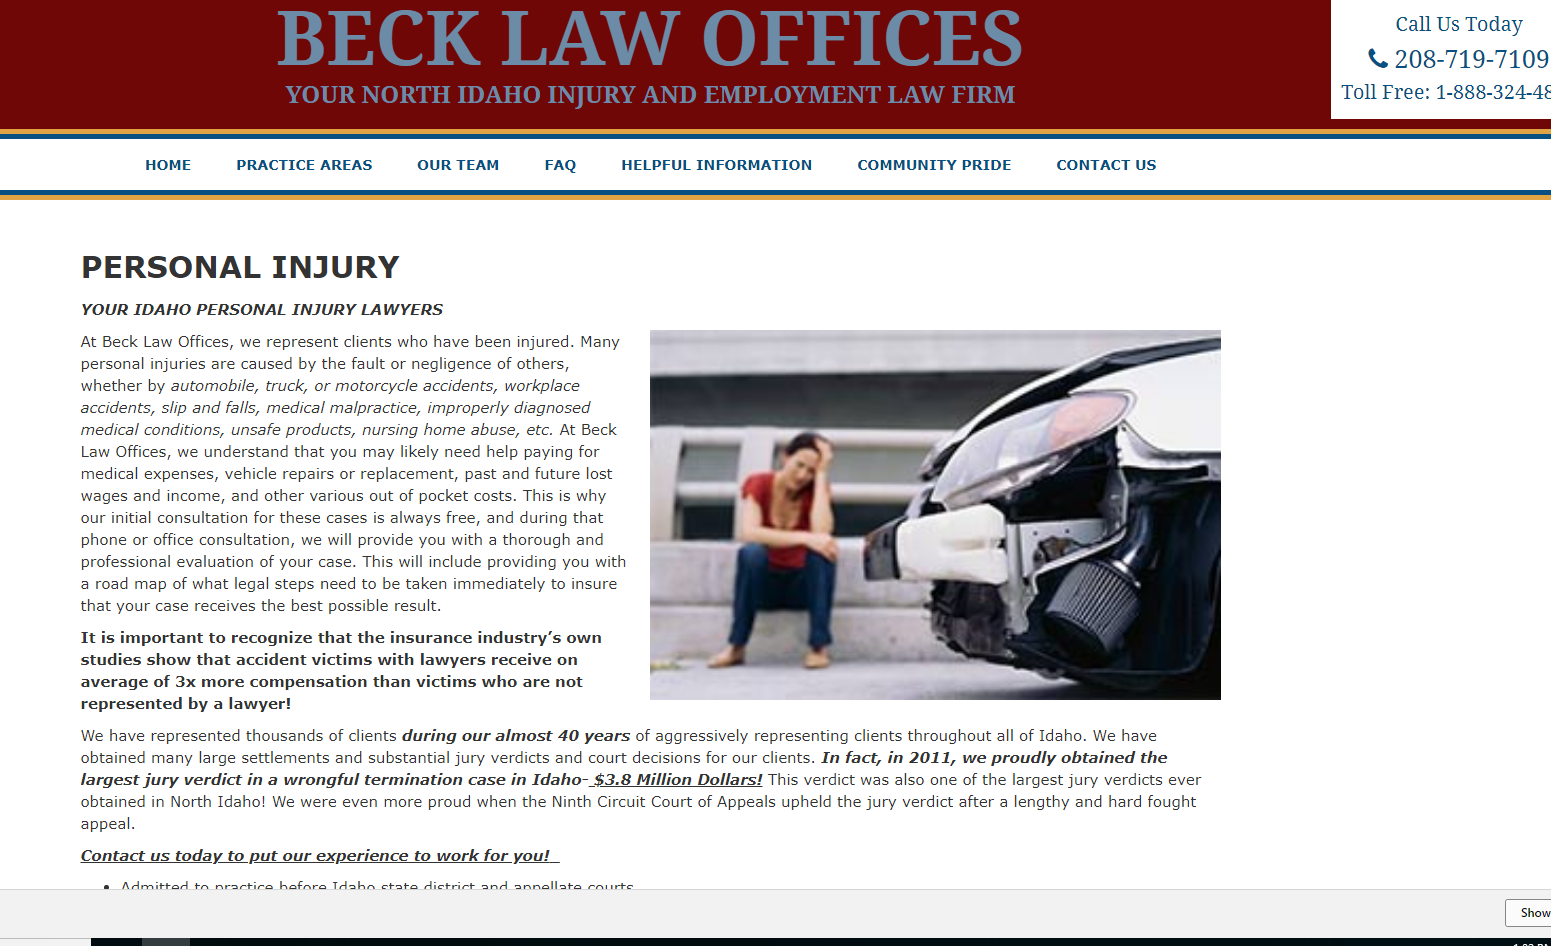 Beck Law Personal Injury Page